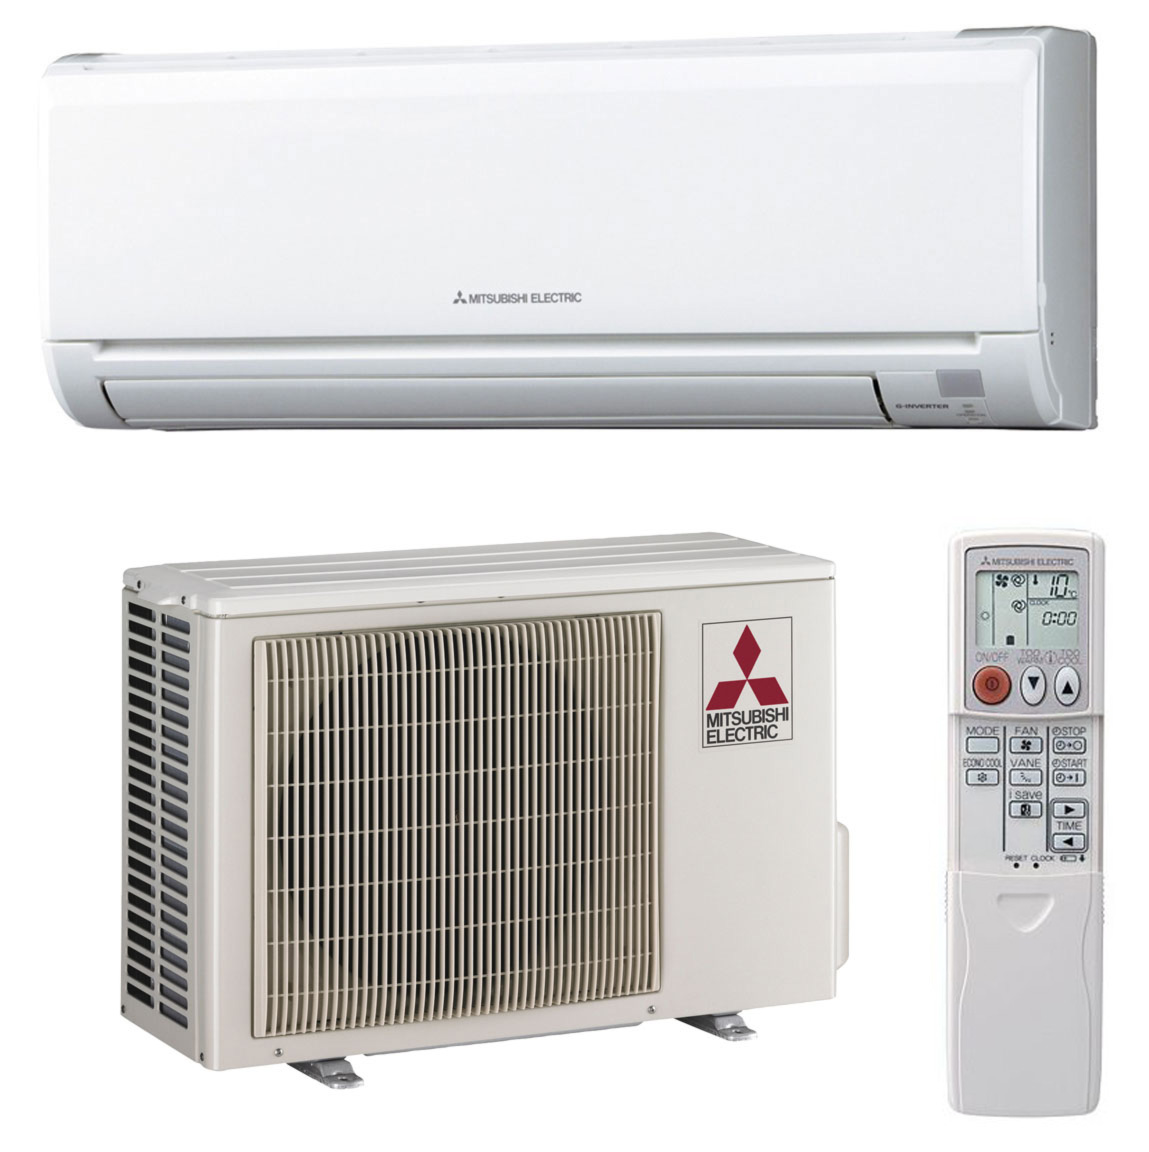 MITSUBISHI ELECTRIC inverter